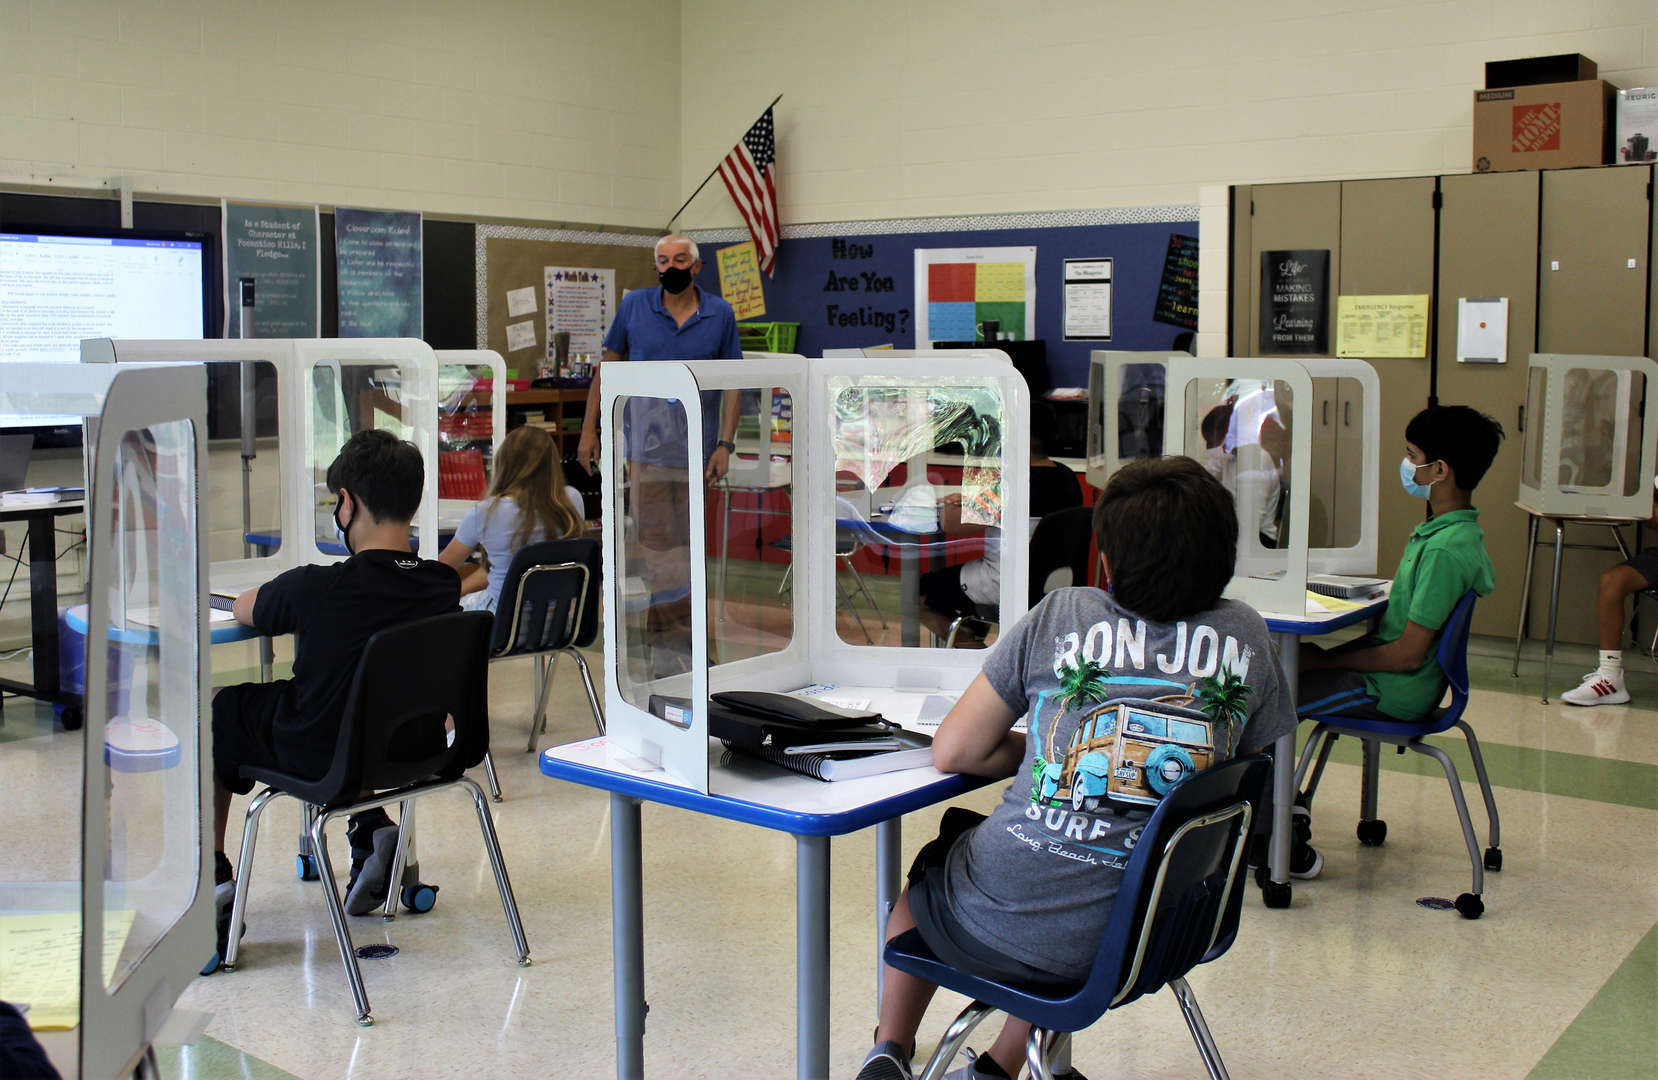 Science teacher Vincent Cook speaks to students on the first day as everyone adjusts to the new three-sided carrels with see-through panels atop everyone's desk.